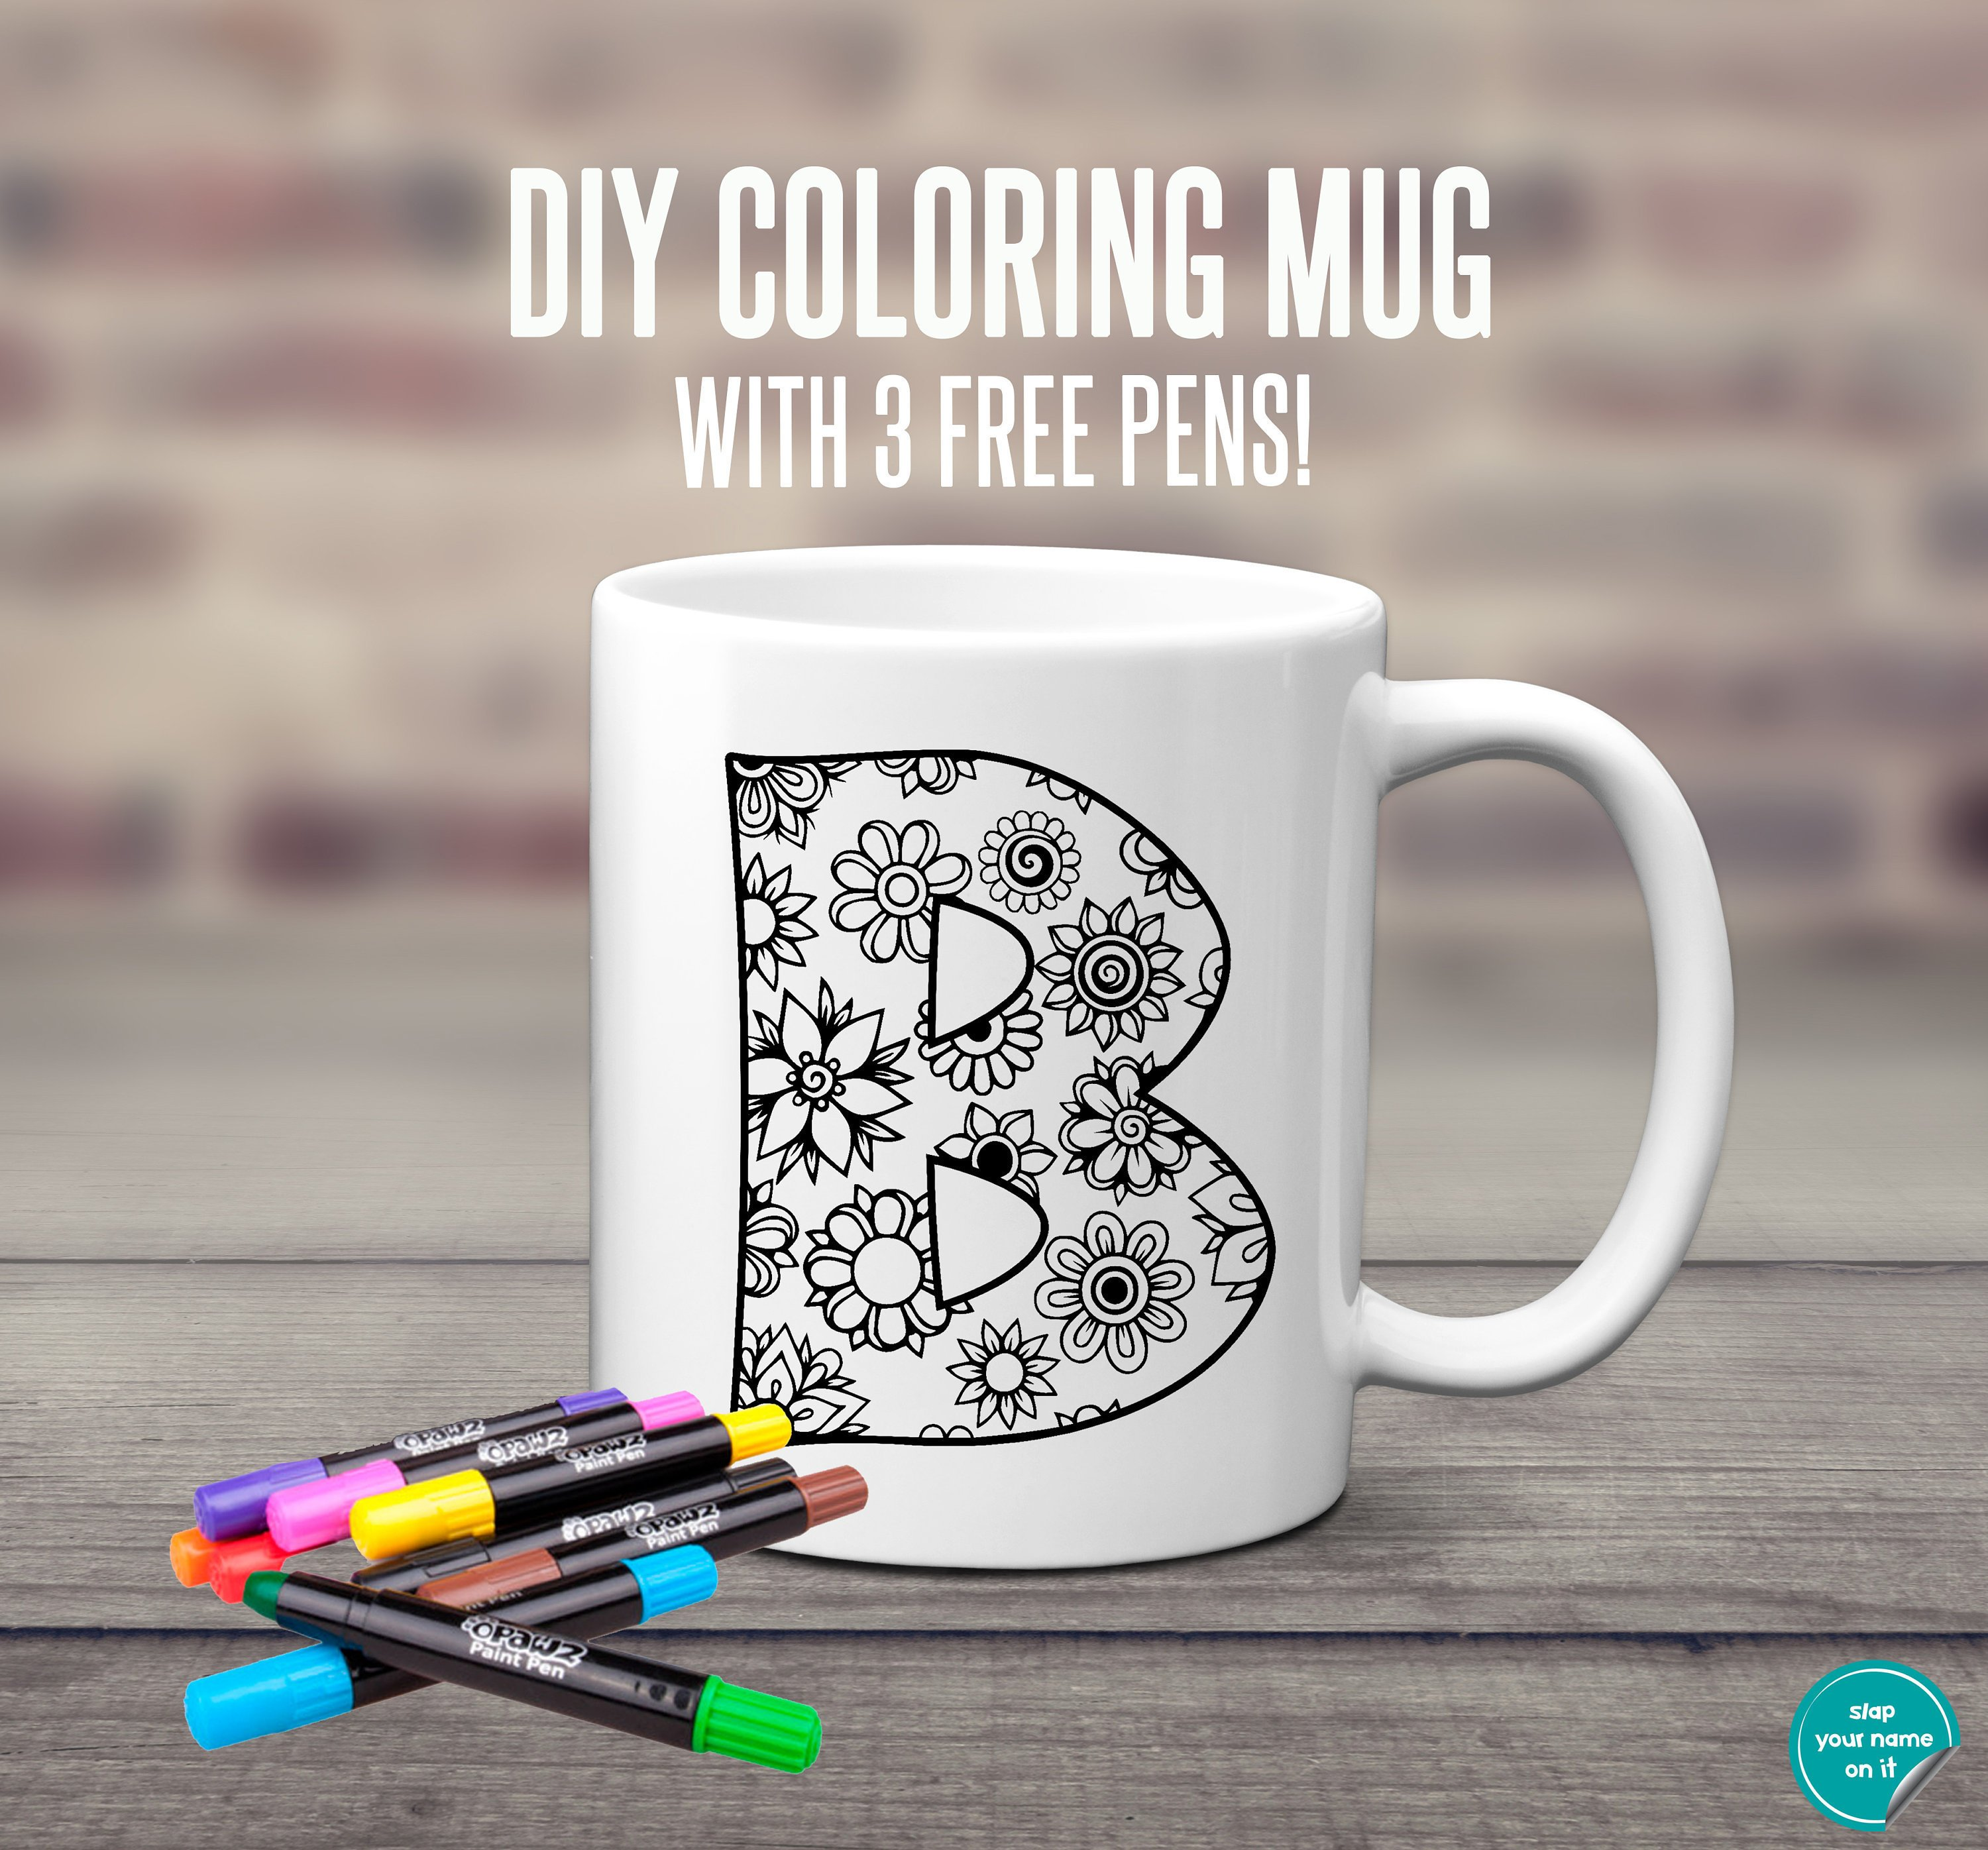 Christmas Coloring Mugs With DIY Coffee Mug Monogram Initial Cup Party Favor Etsy